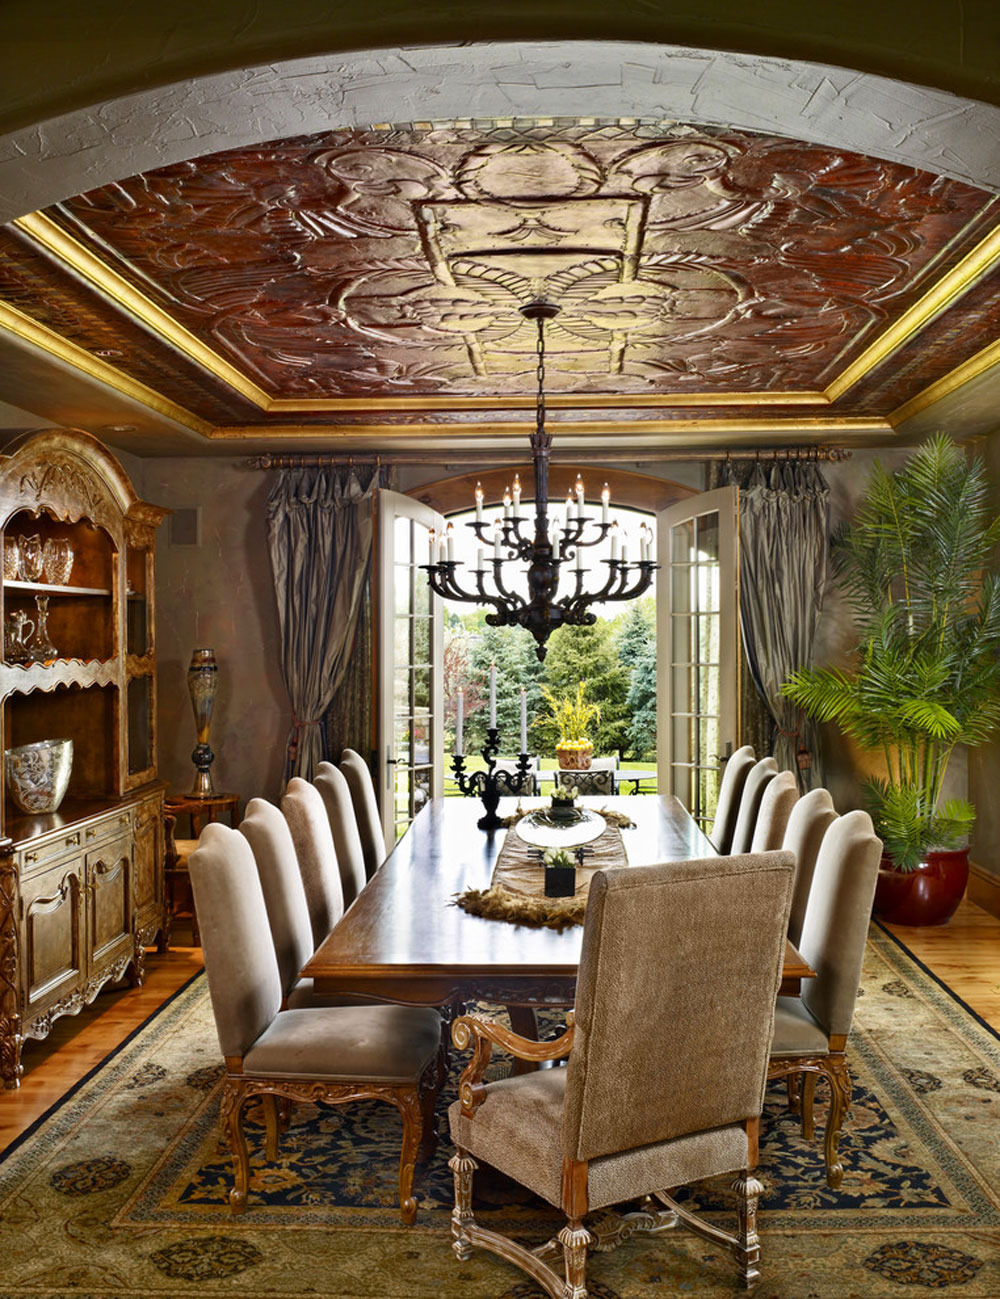 Most Beautiful Home Interiors Unique Beautiful Houses Interior Design Tips for Small or Big Homes